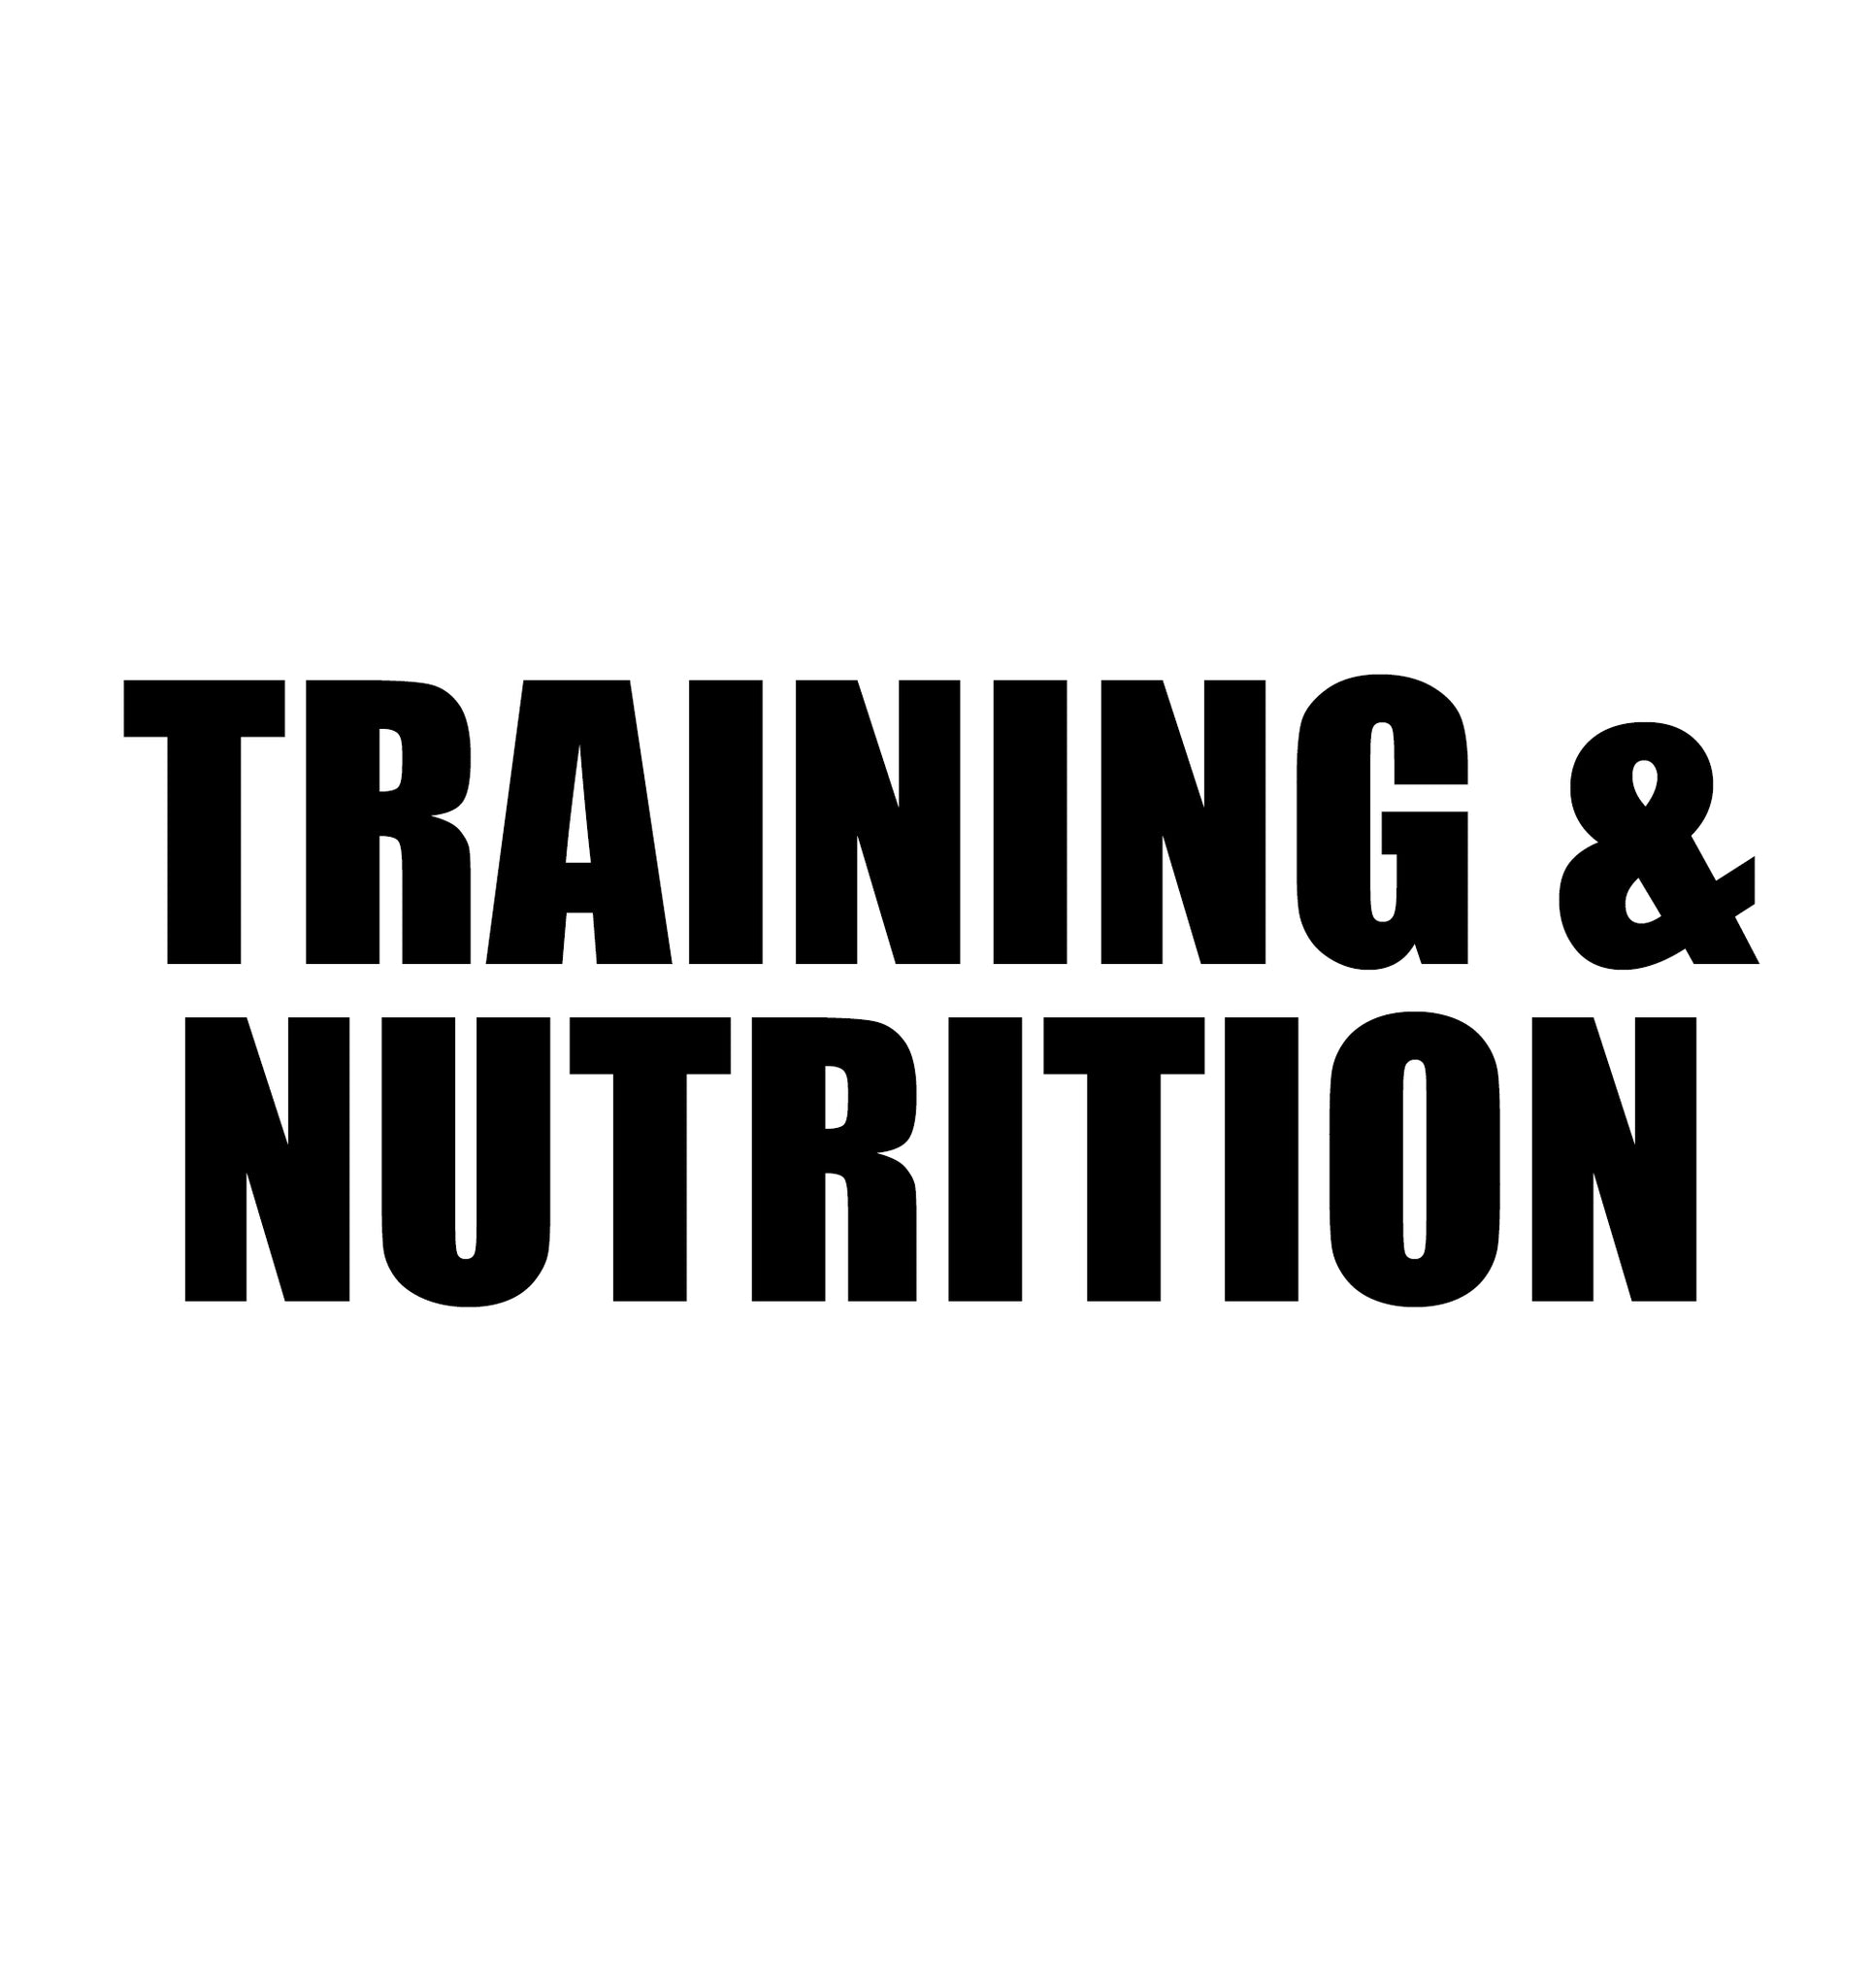 $300 Monthly Training & Nutrition